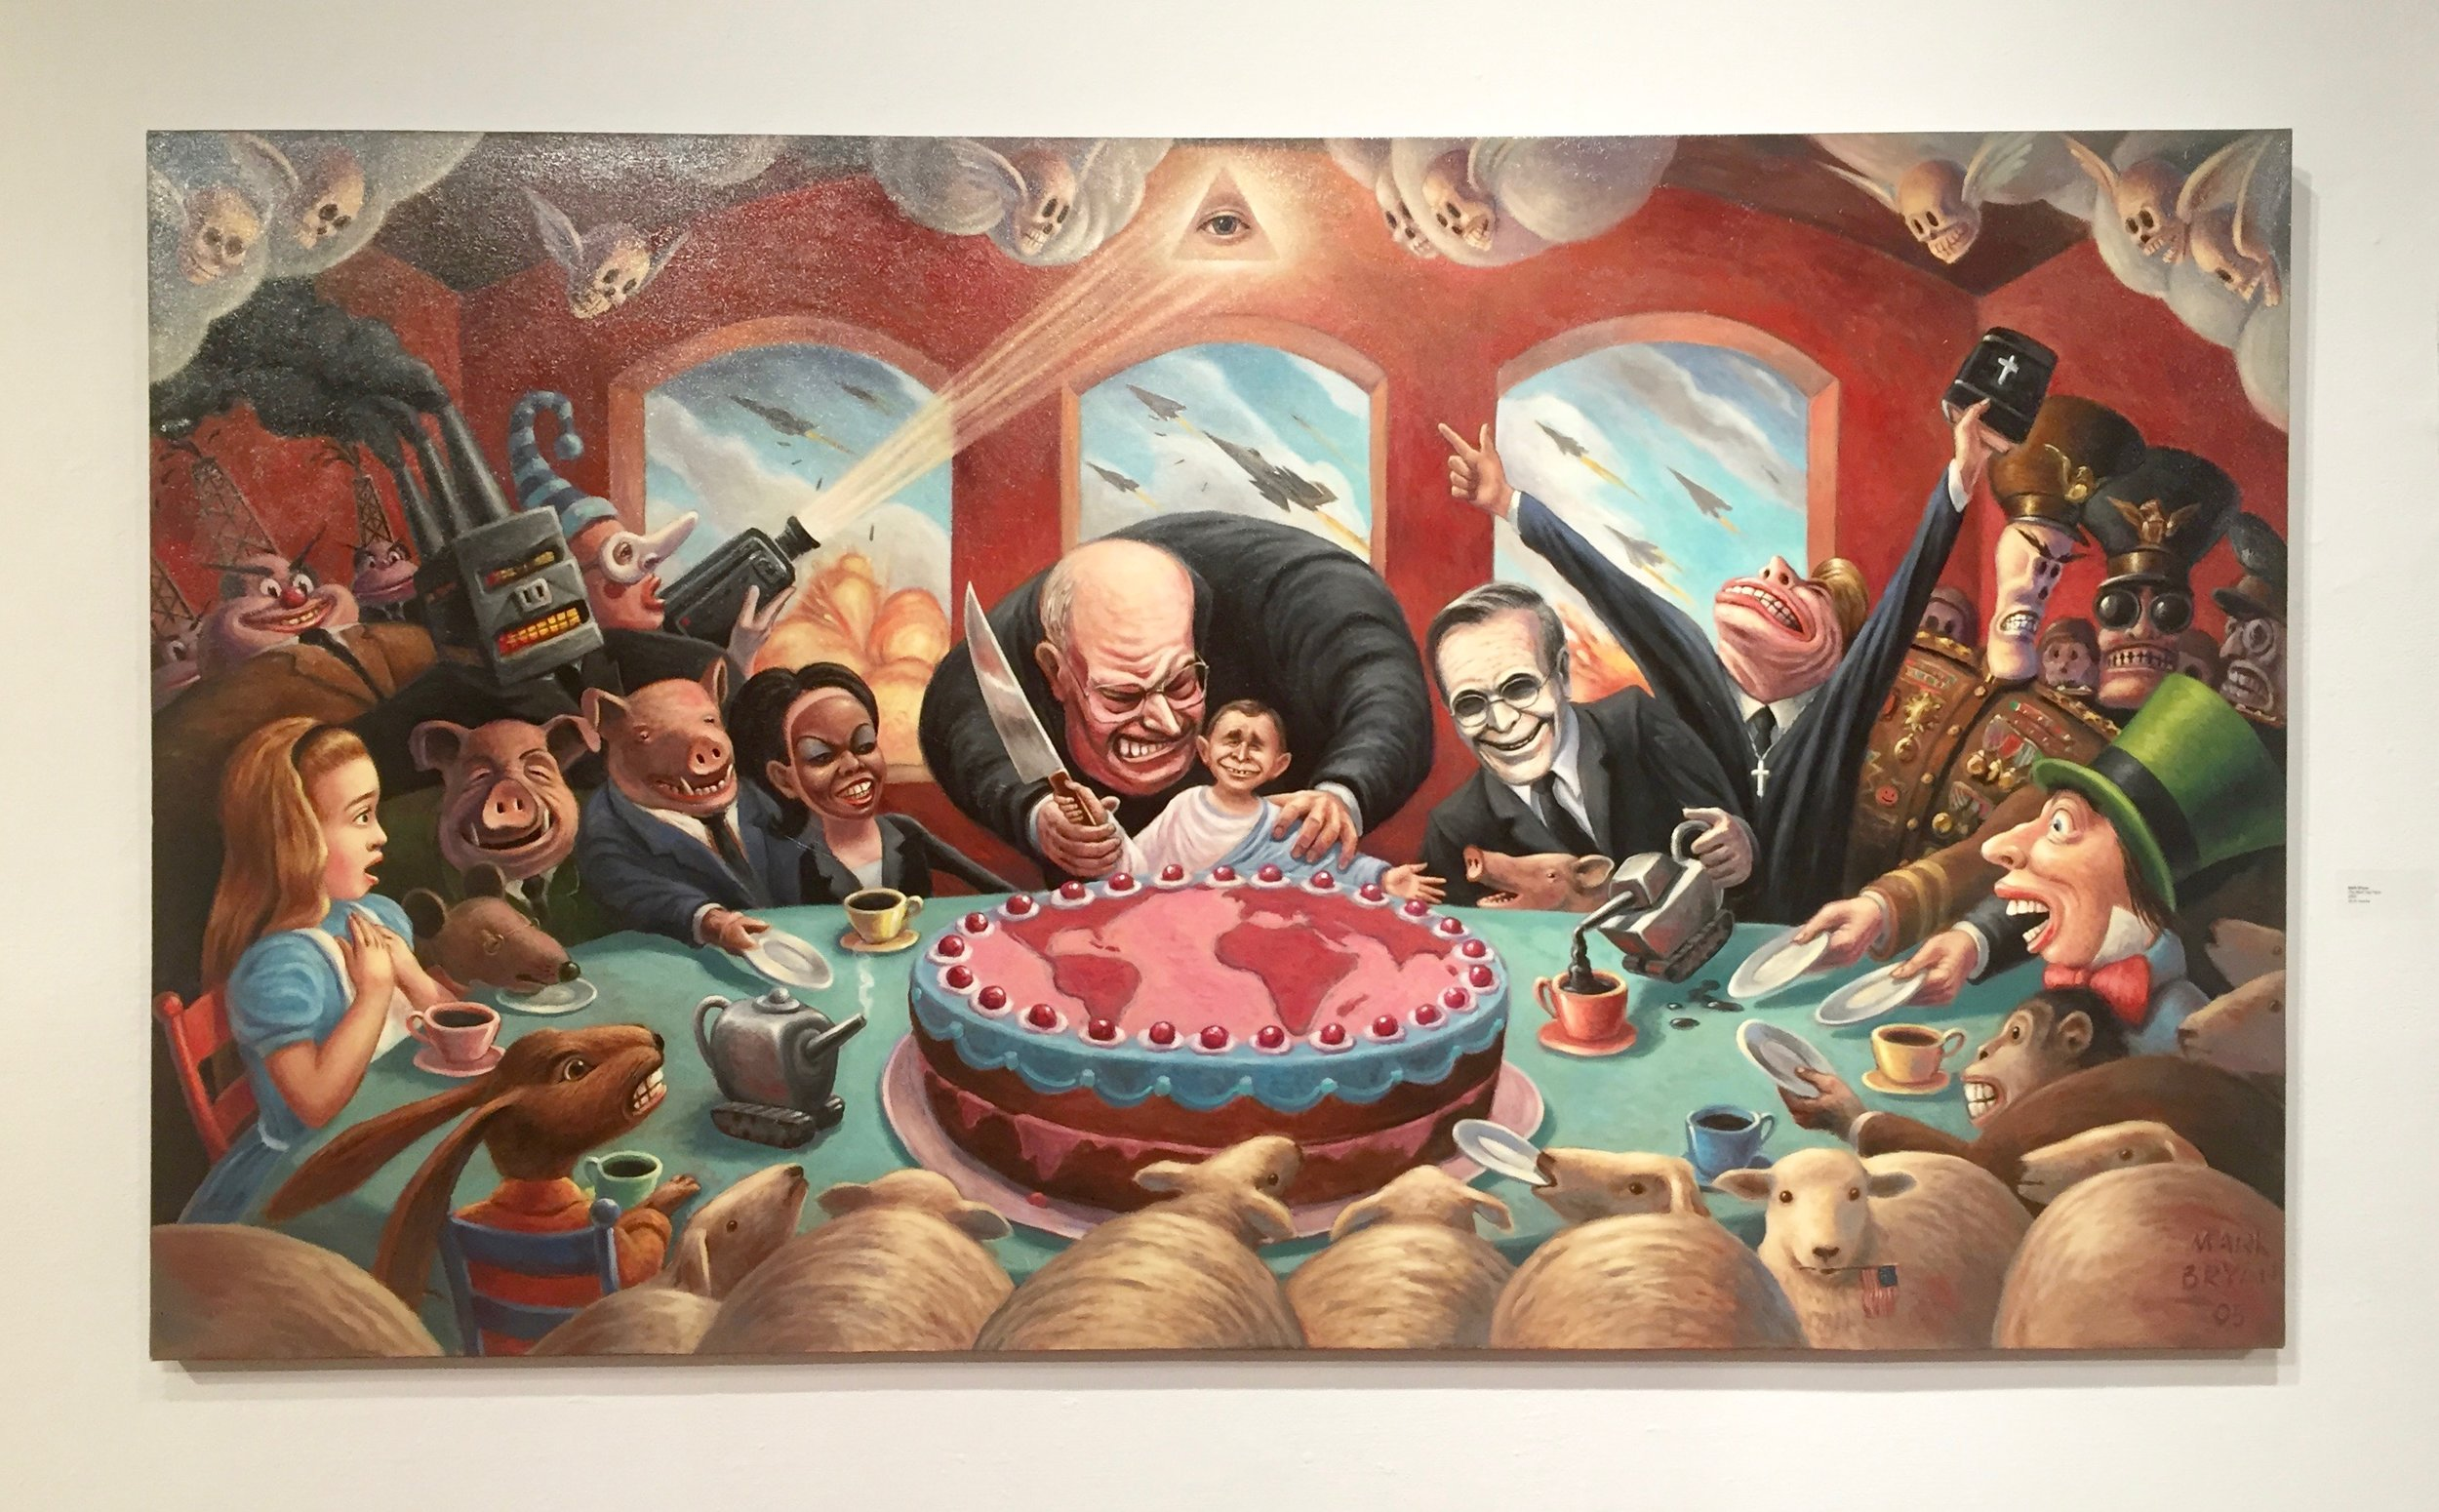 Mark Bryan,  The Mad Tea Party  (2005). Note sheep in foreground.